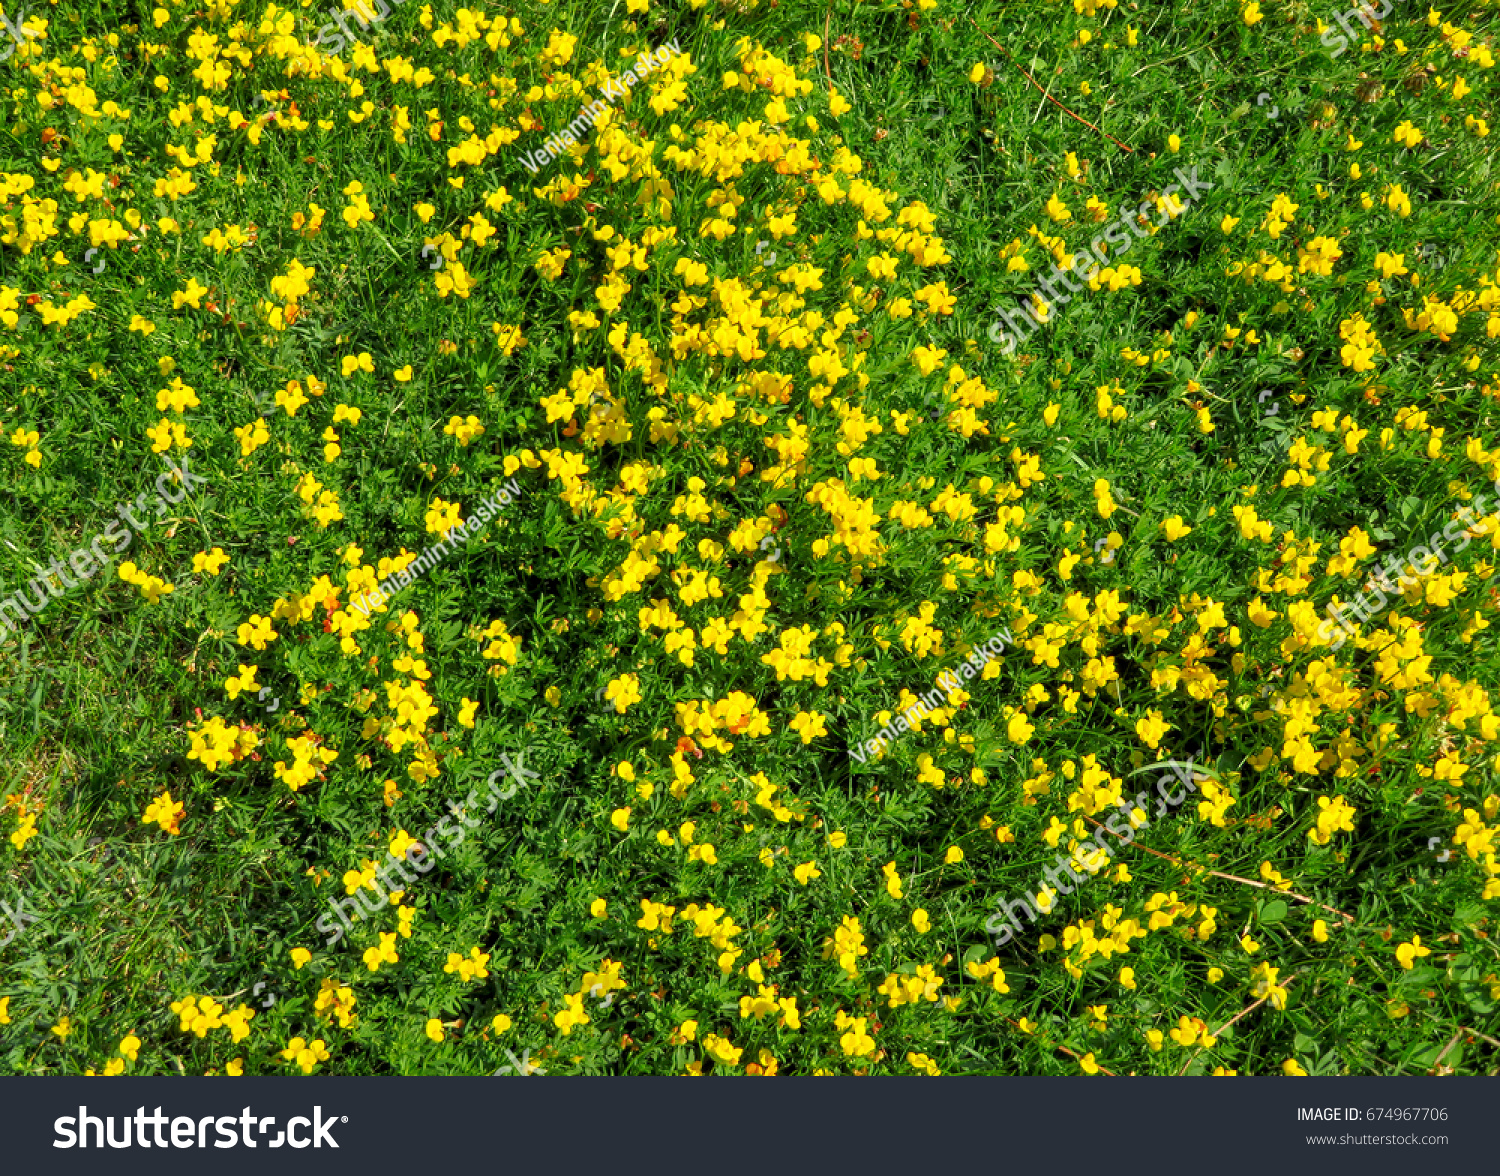 Spring Yellow Dandelions View In Green Grass Ez Canvas